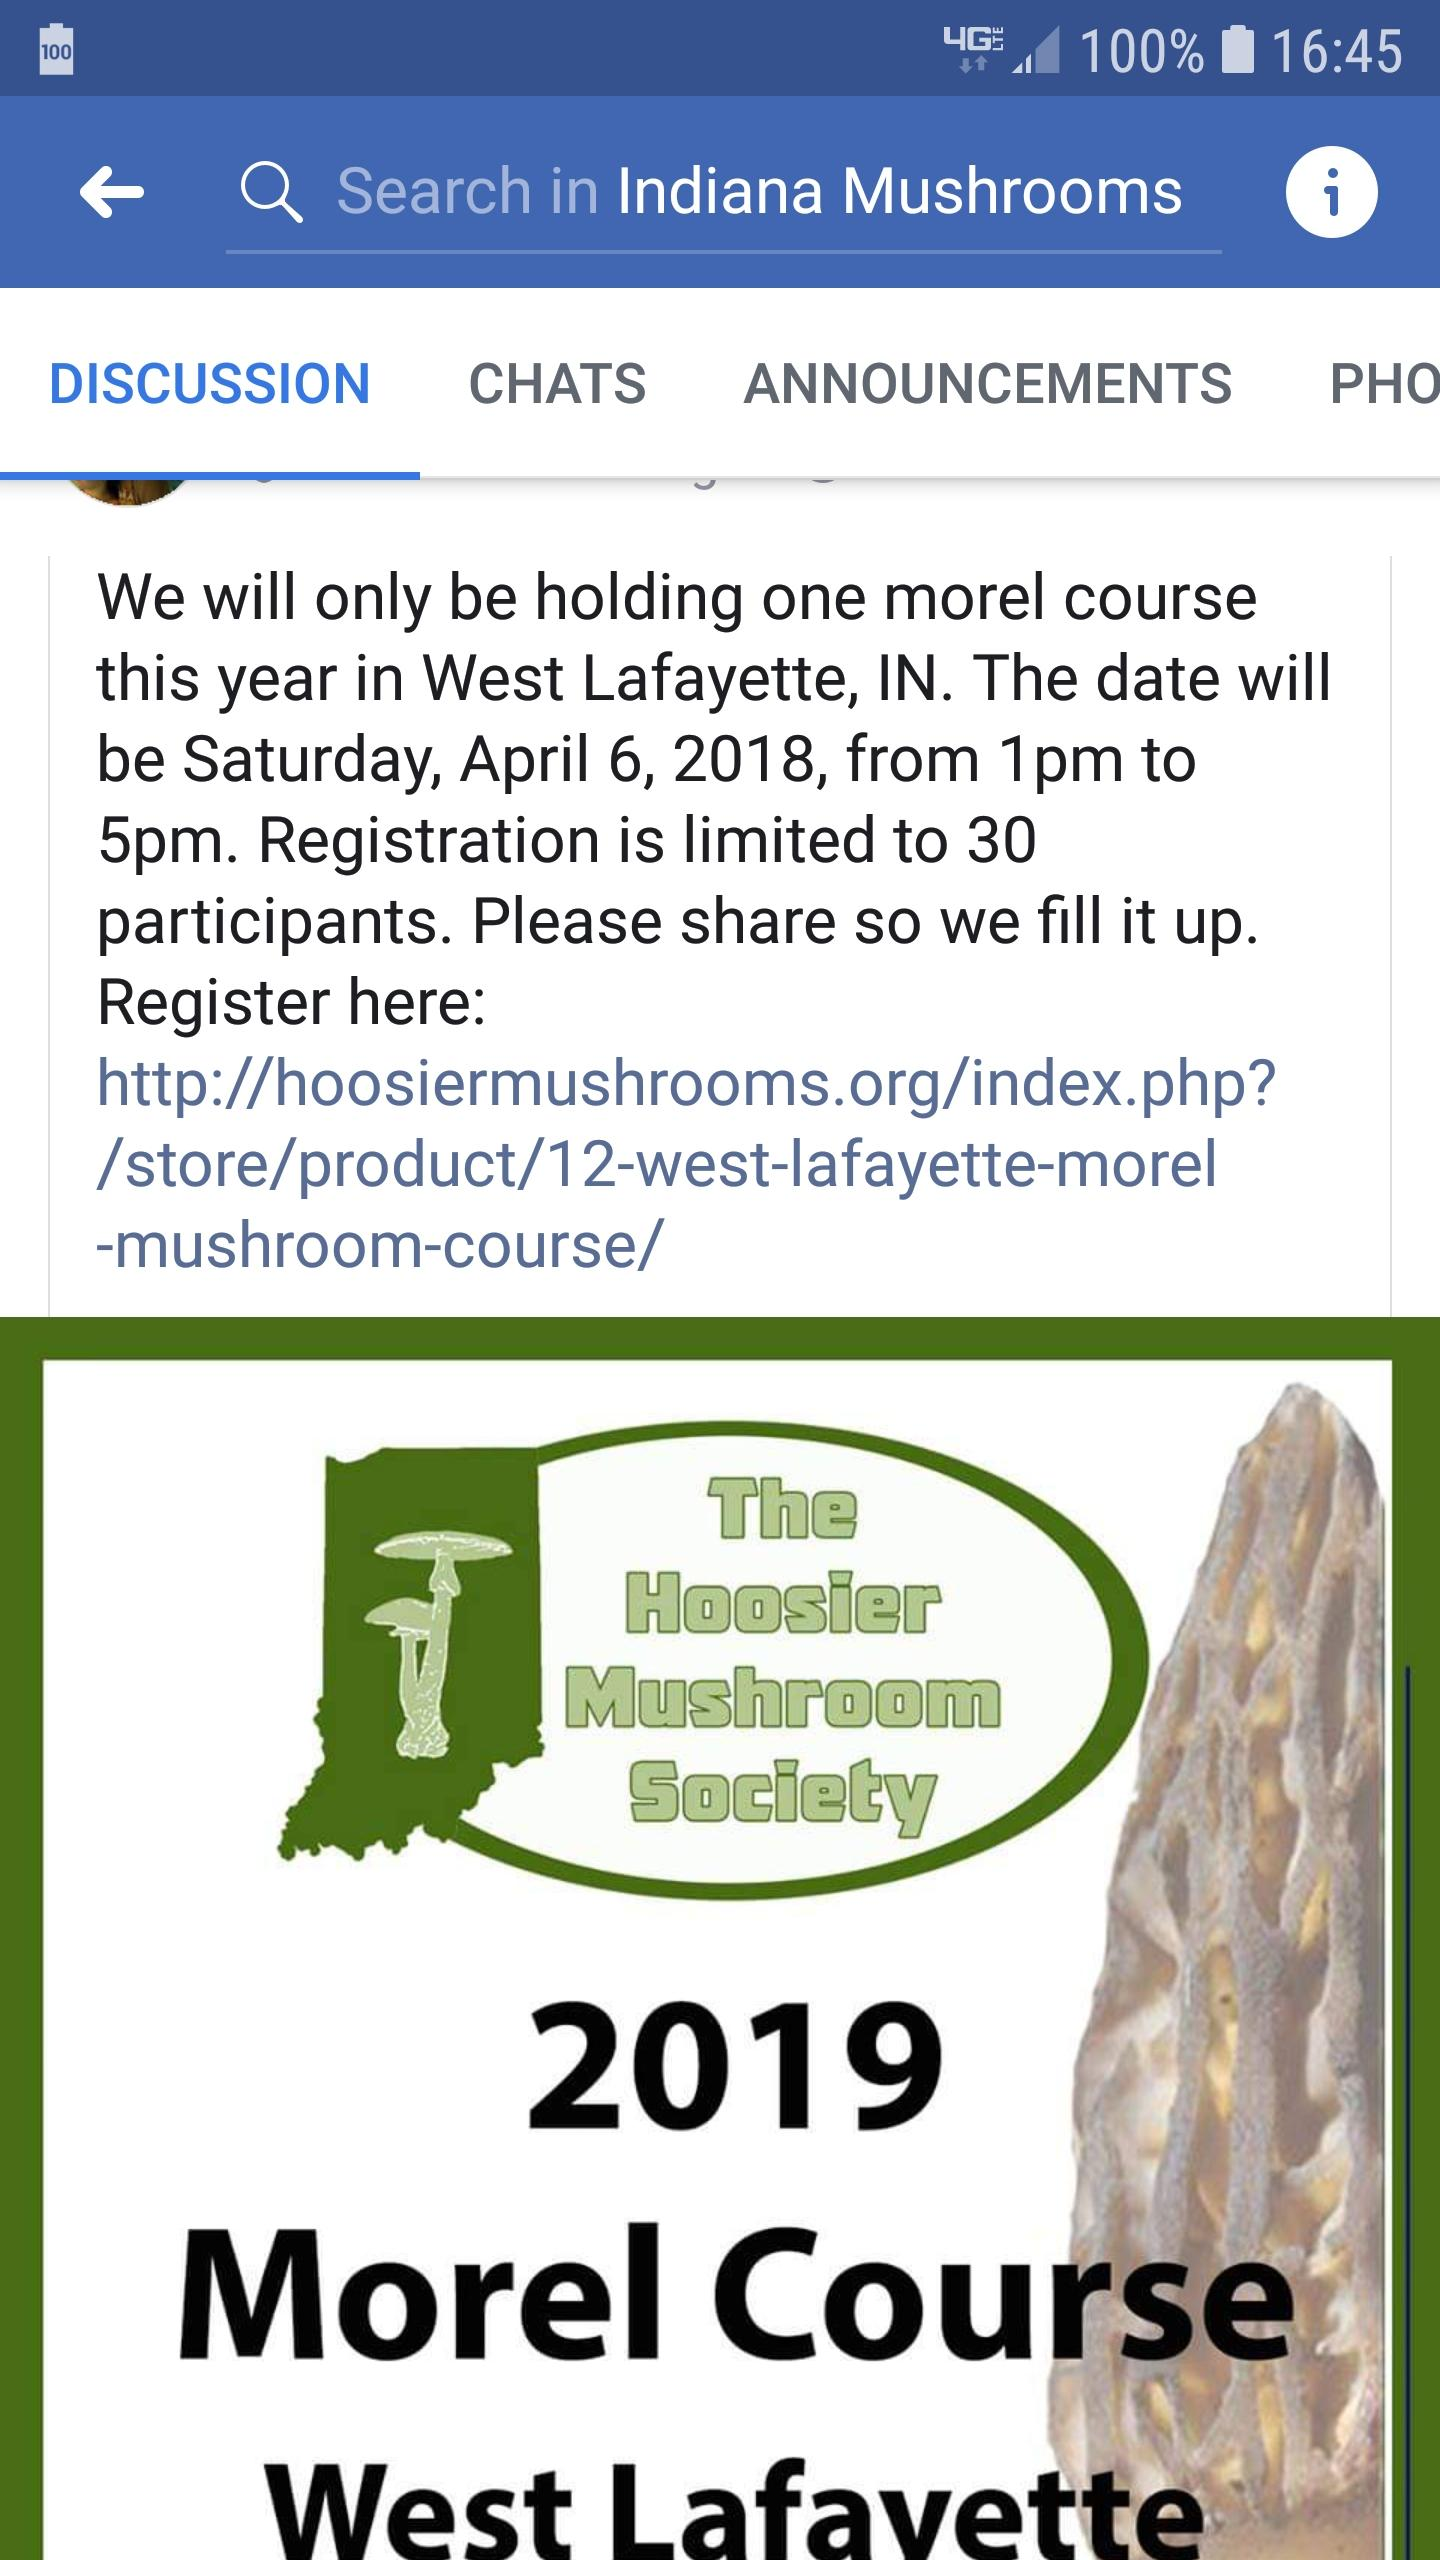 Morel course - Identification Discussion - The Hoosier Mushroom Society